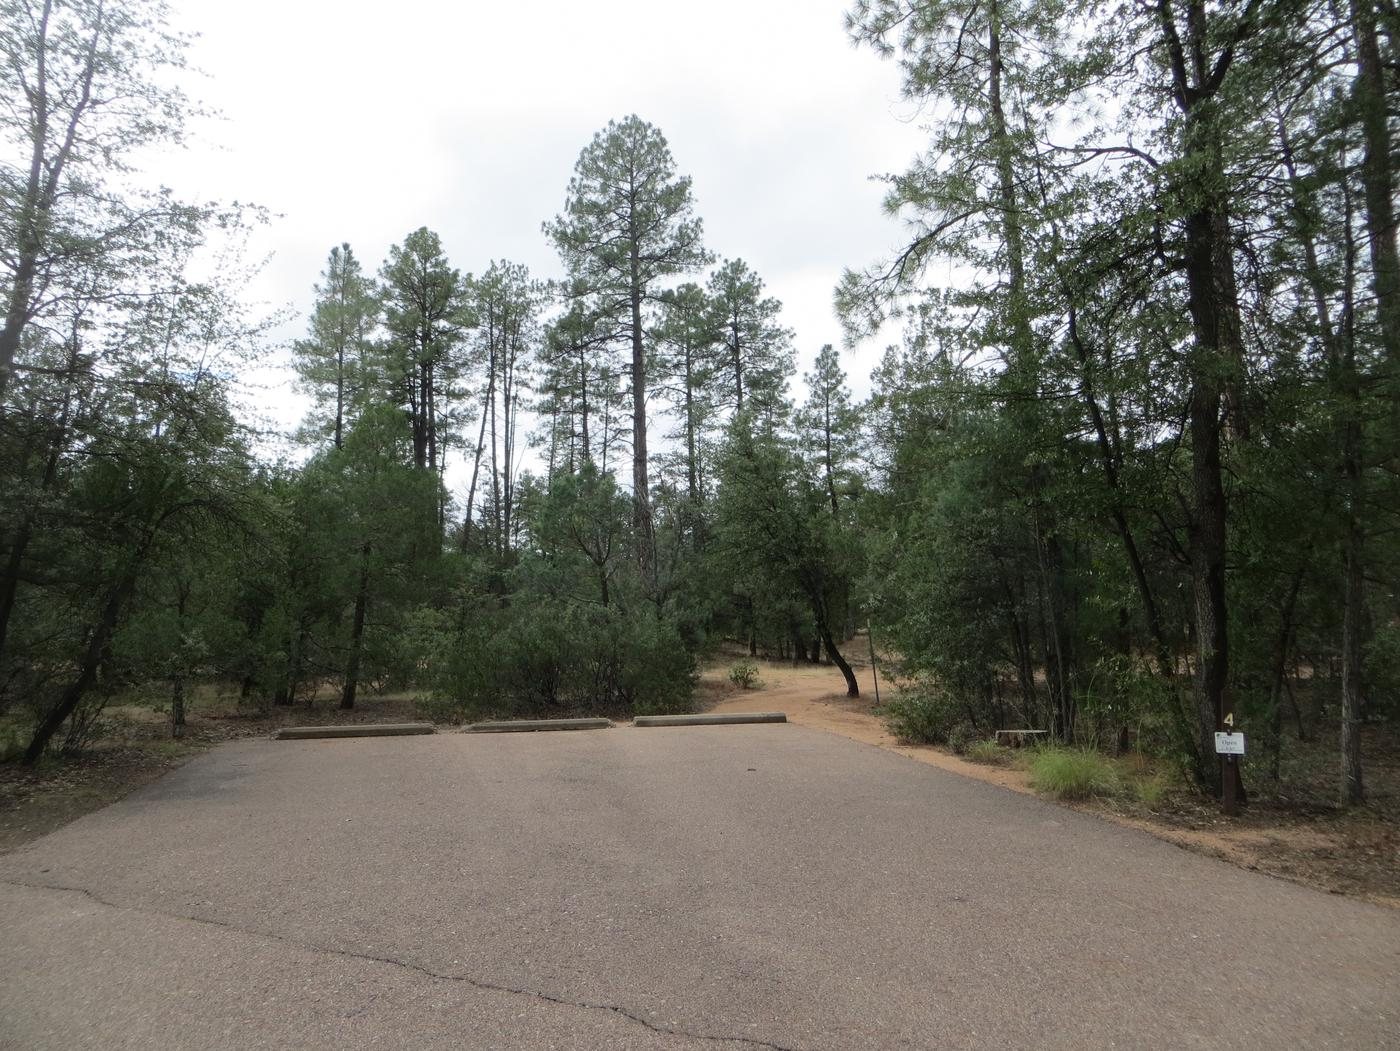 Houston Mesa, Black Bear Loop site #04 featuring parking, entrance to the wooded site, and camping space.